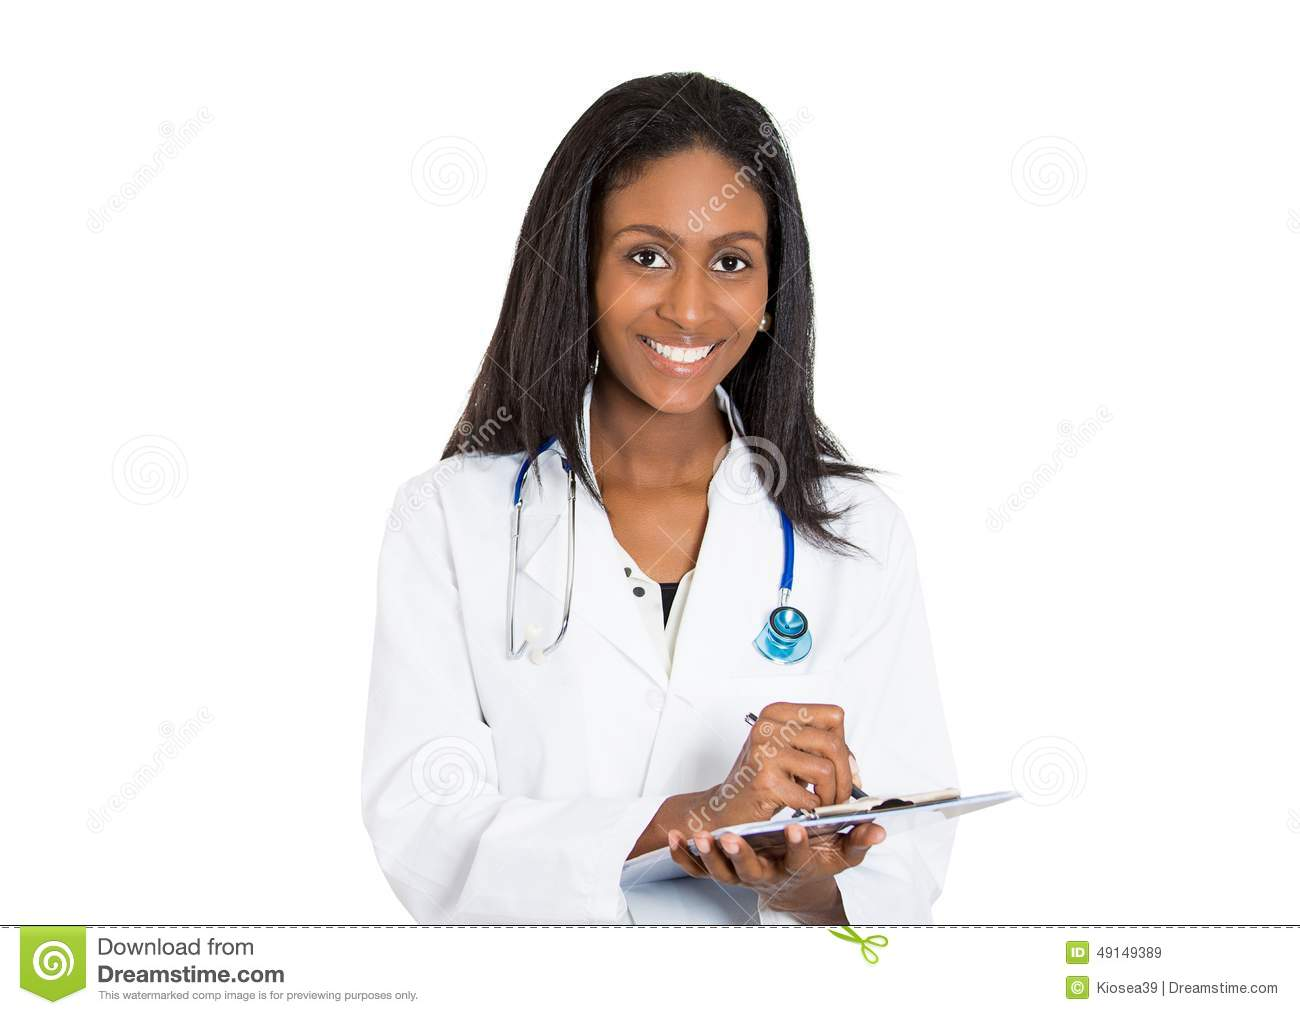 motivational interviewing questions and answers professional motivational interviewing questions and answers racgp motivational interviewing techniques interviewing a doctor medical interview questions answers